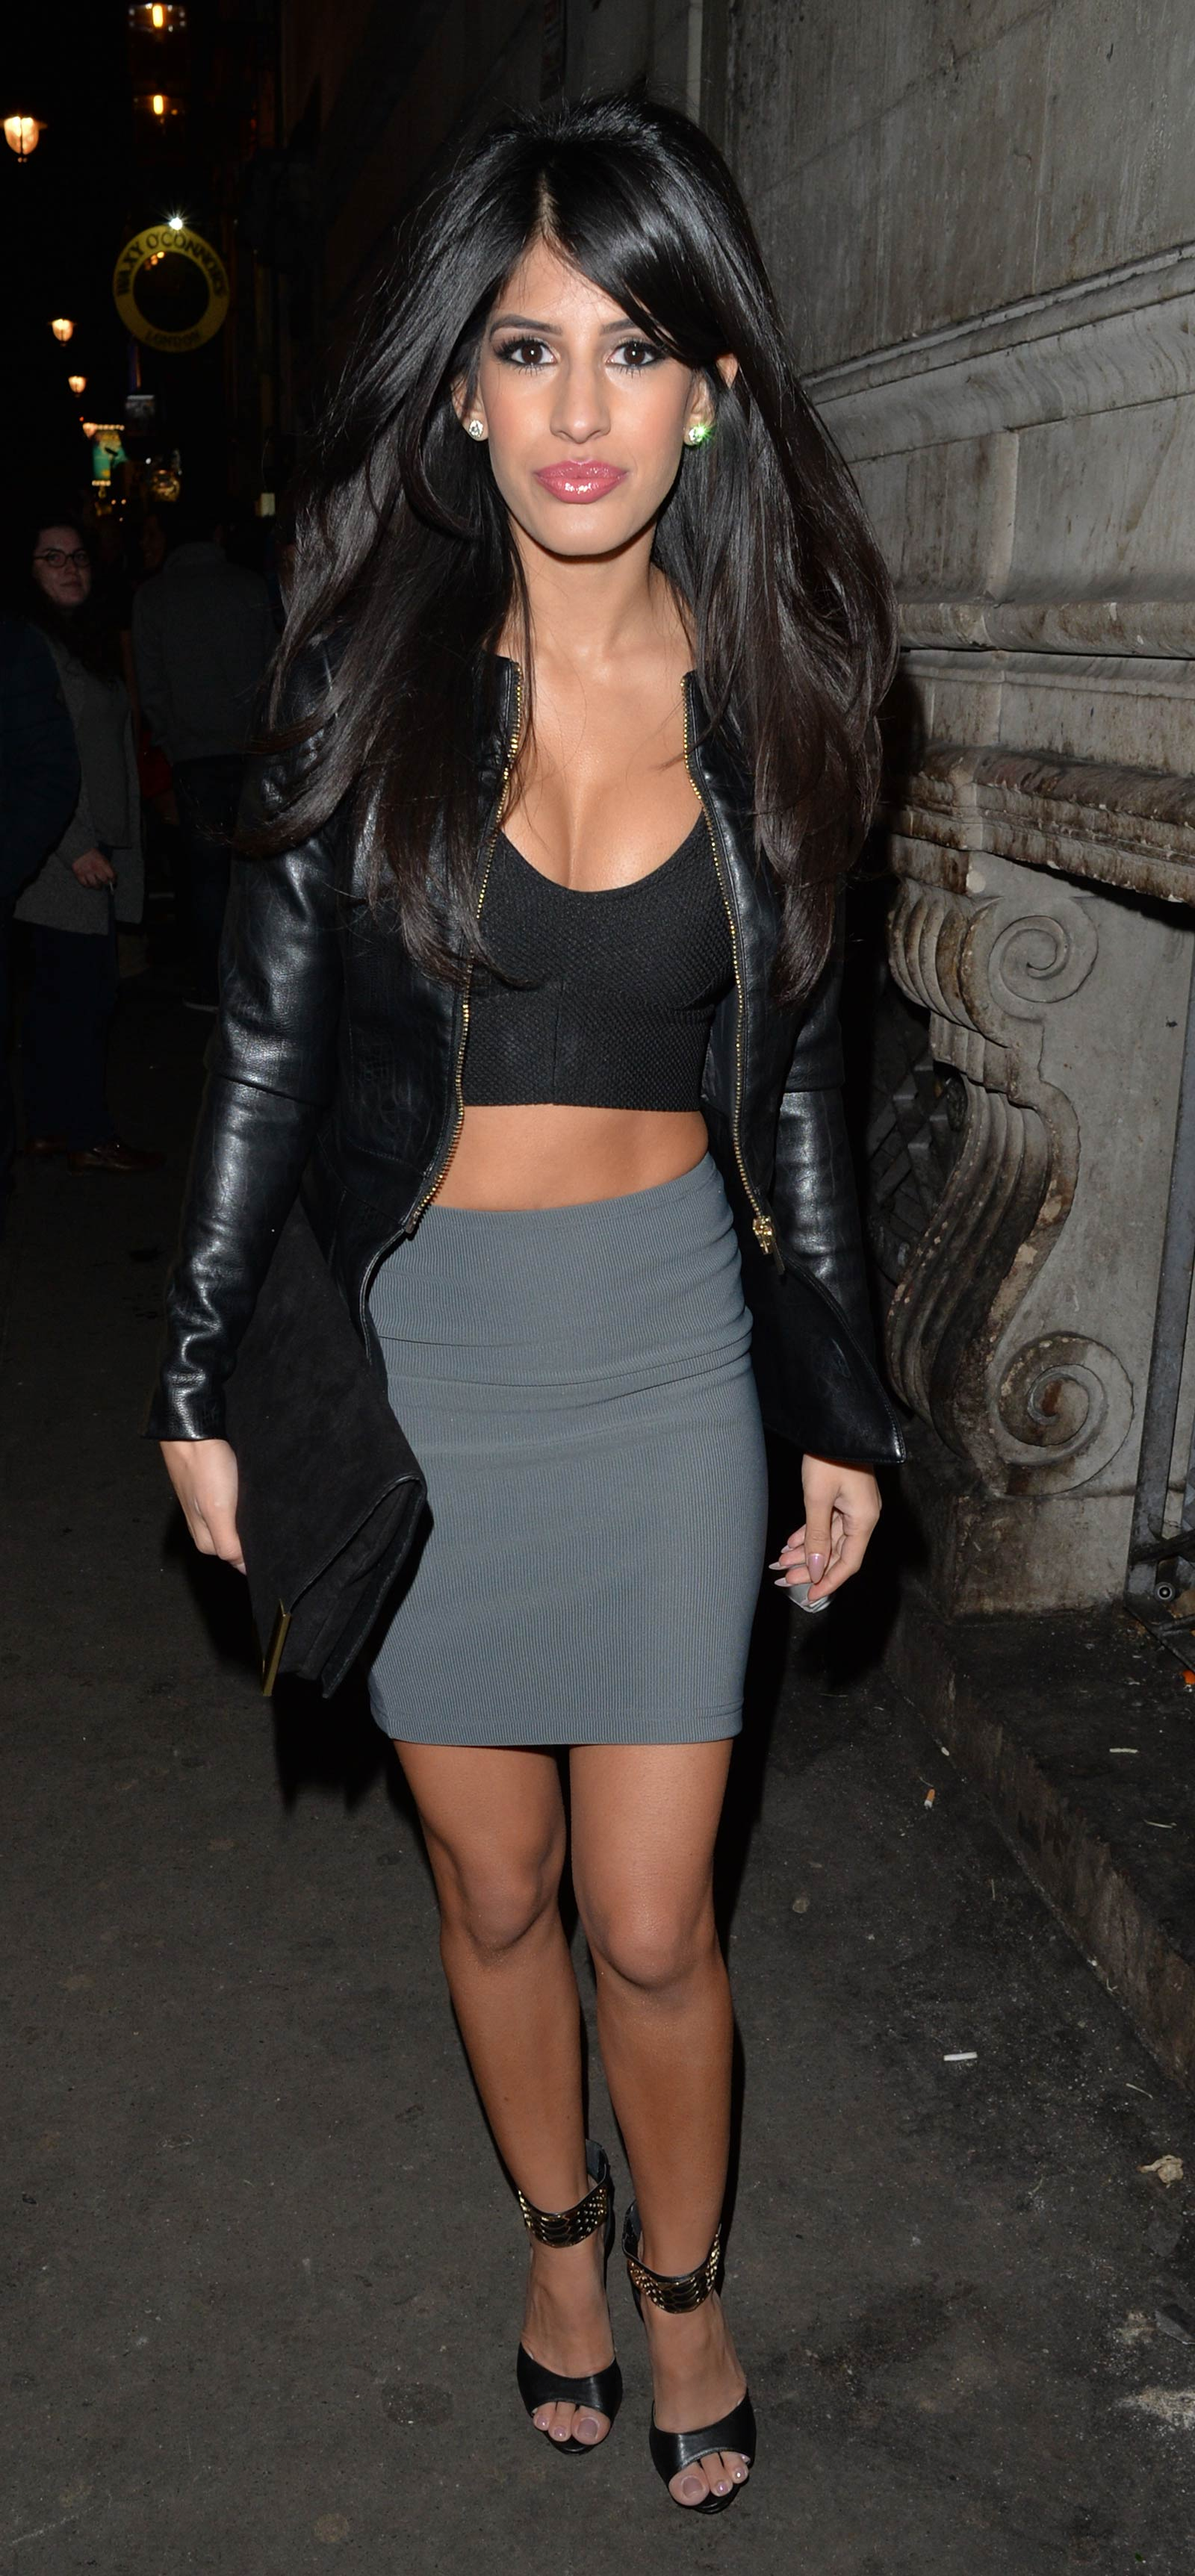 Jasmin Walia seen leaving Dstrkt Club